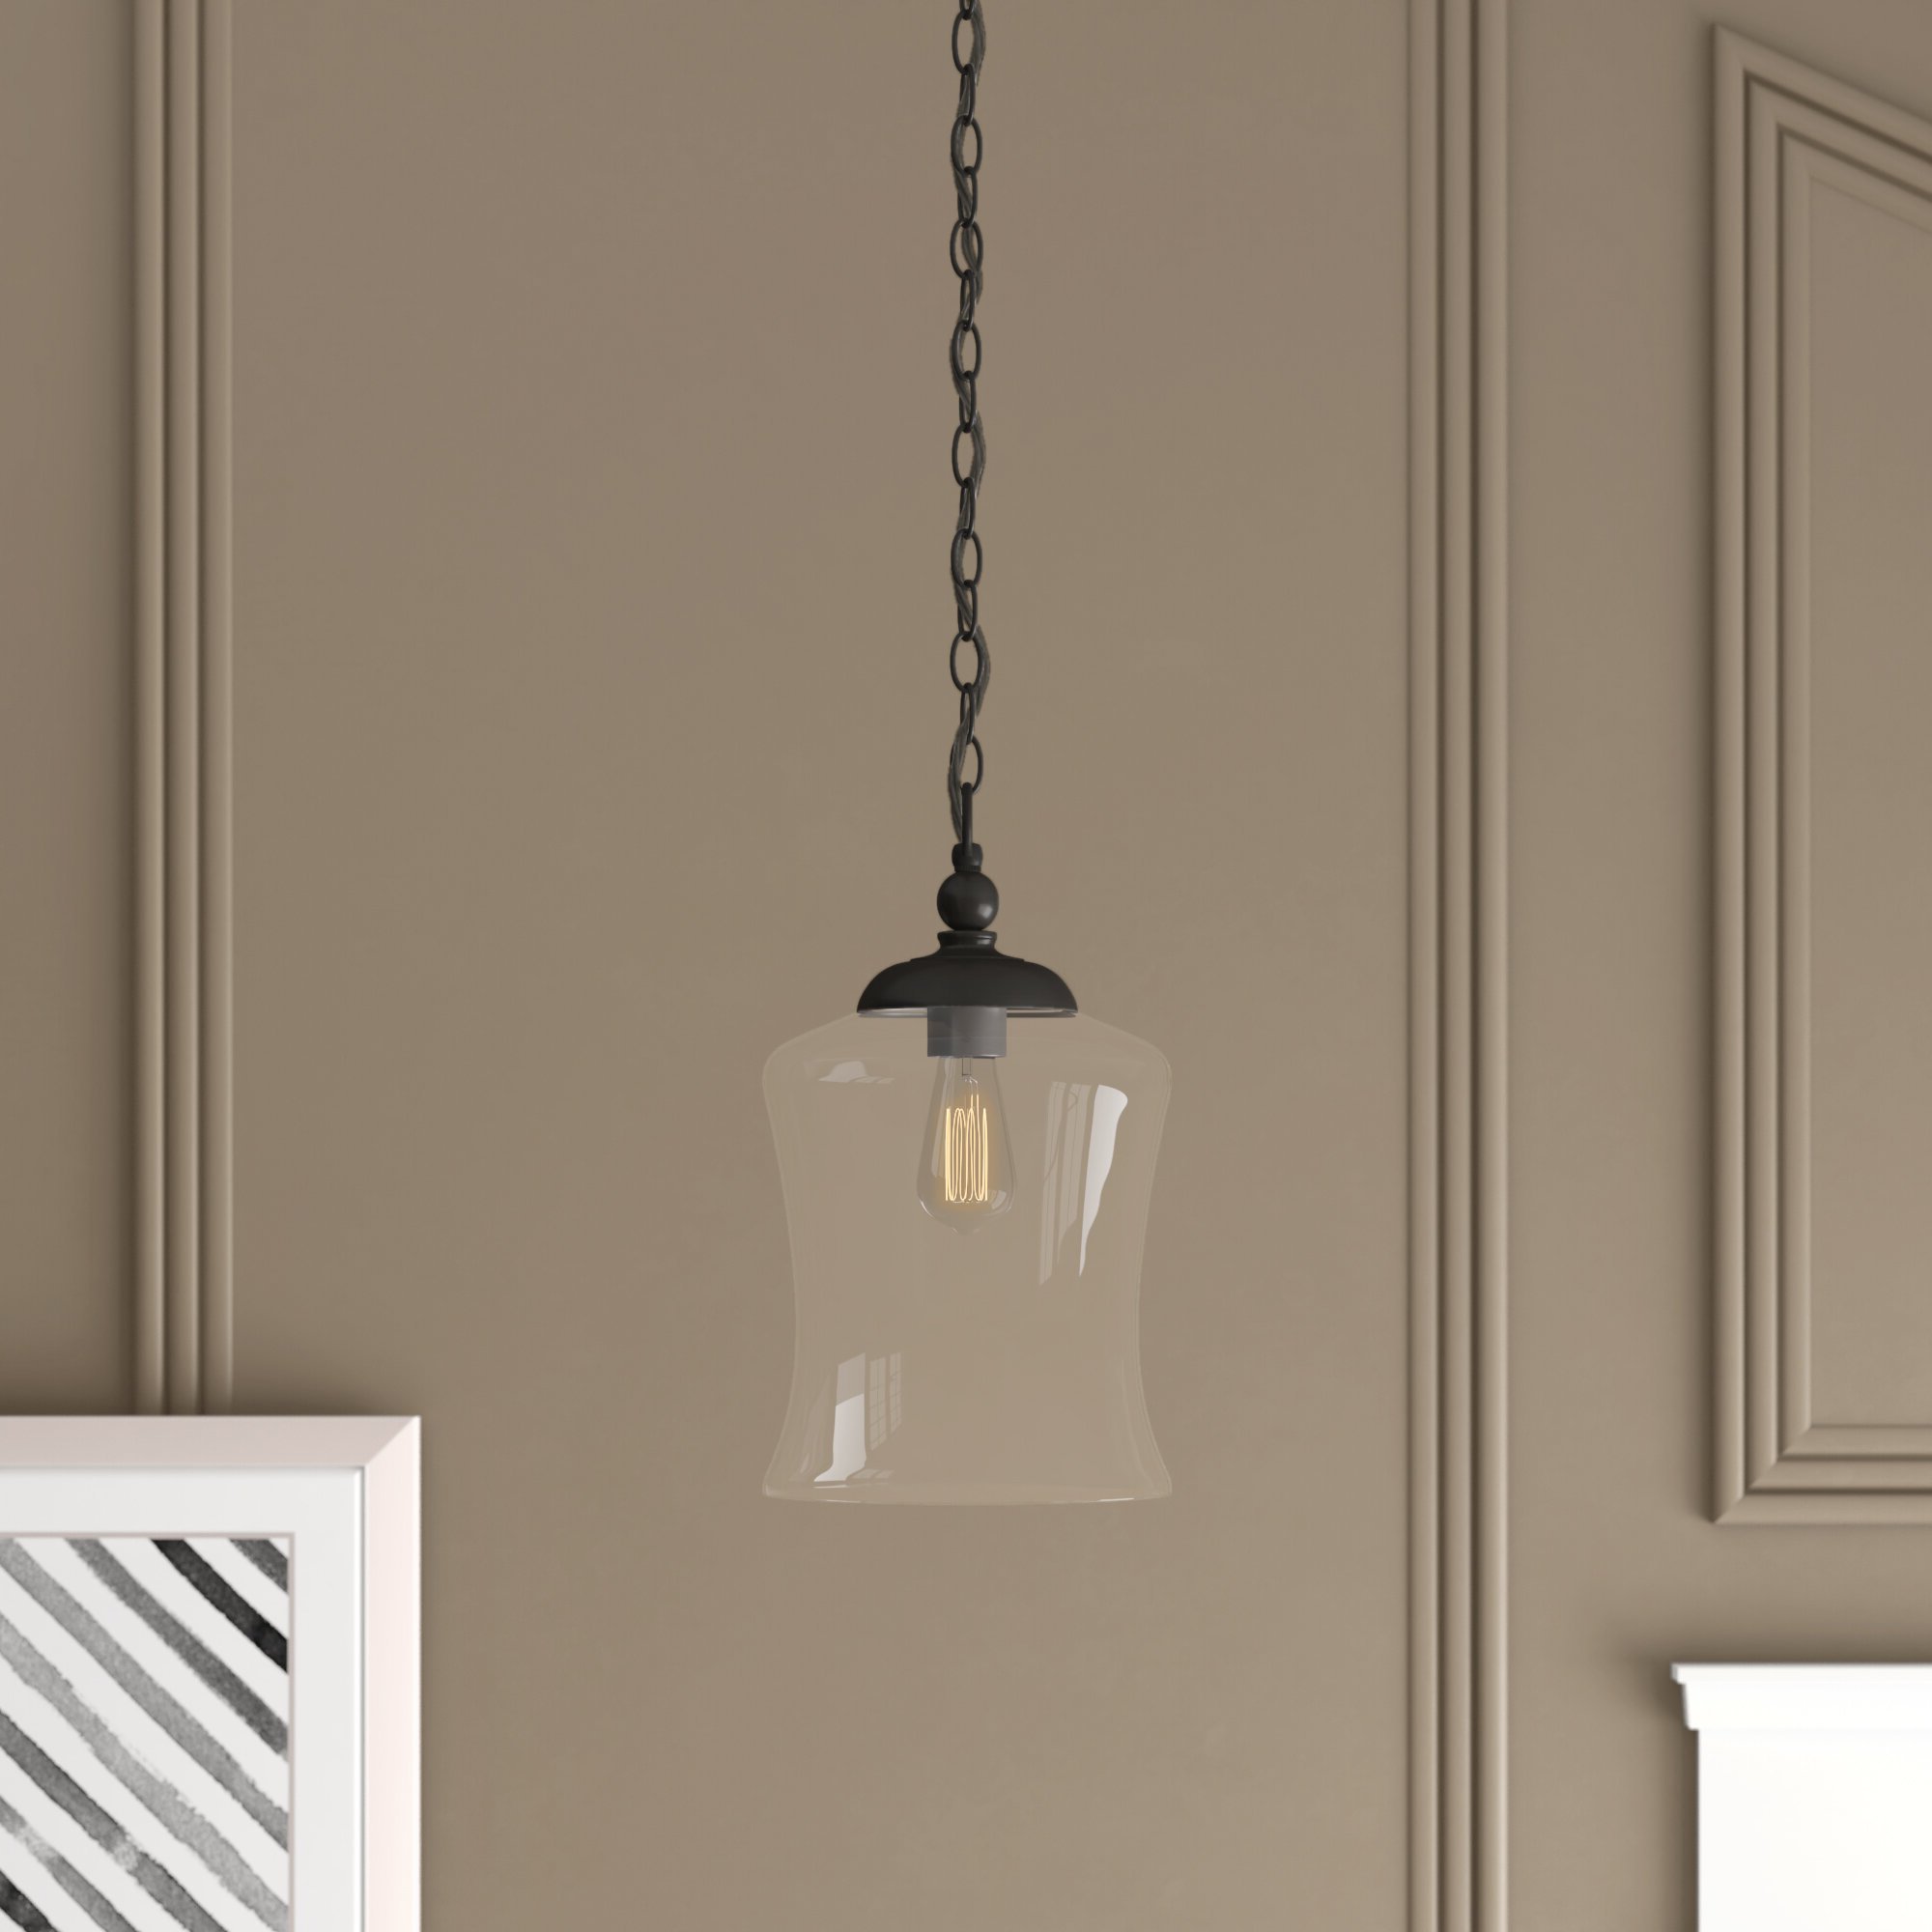 Wentzville 1 Light Single Bell Pendant Throughout Newest Sussex 1 Light Single Geometric Pendants (View 17 of 25)